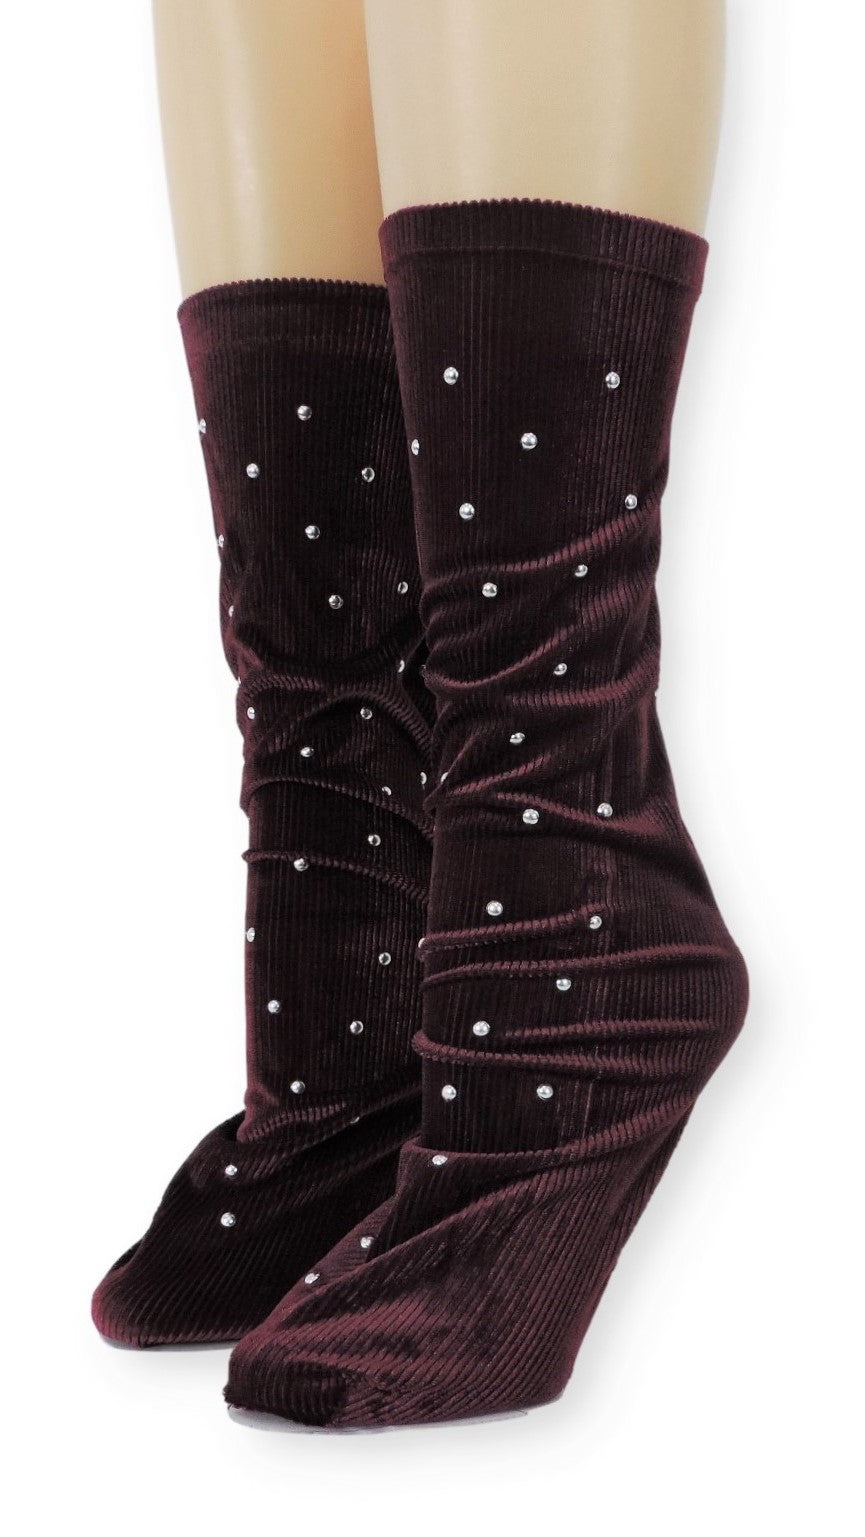 Ribbed Maroon Velvet Socks with Beads - Global Trendz Fashion®